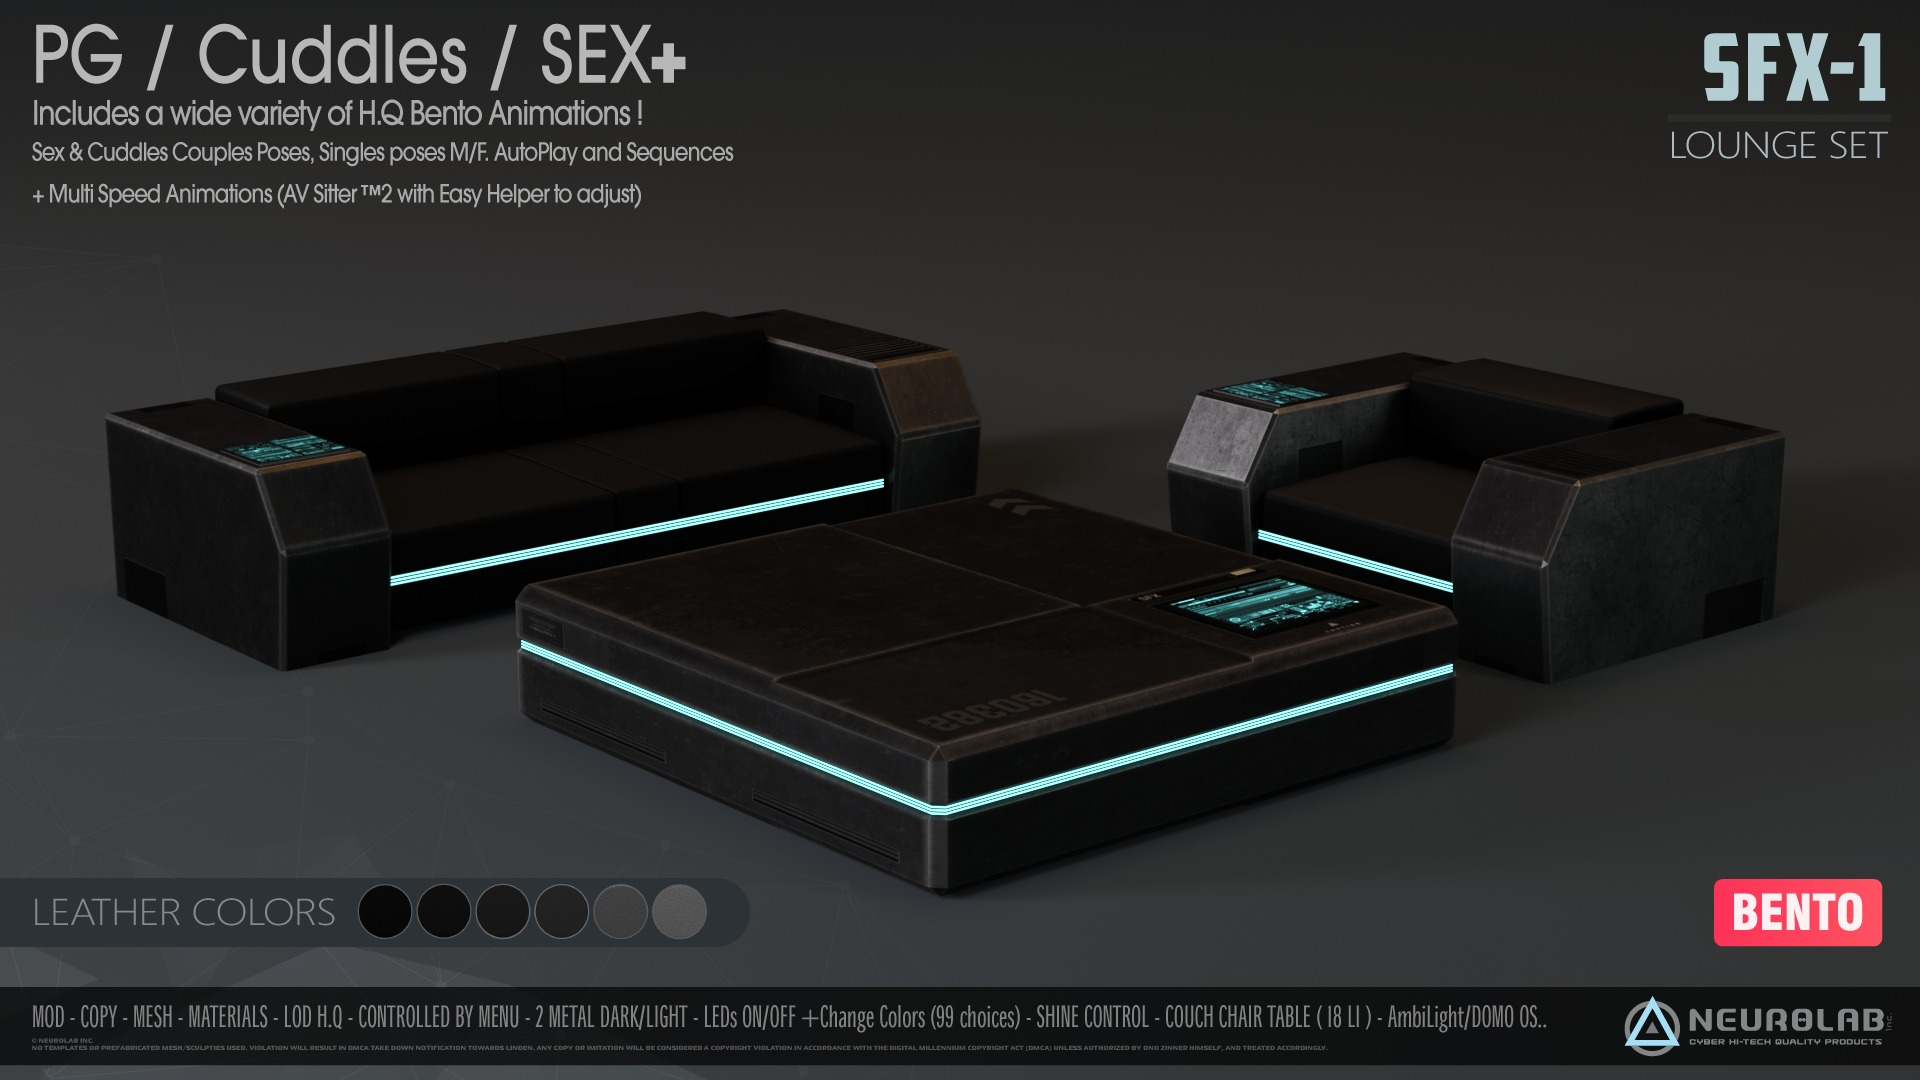 SFX-1 SOFA LOUNGE SET (V.4.5) *Update*